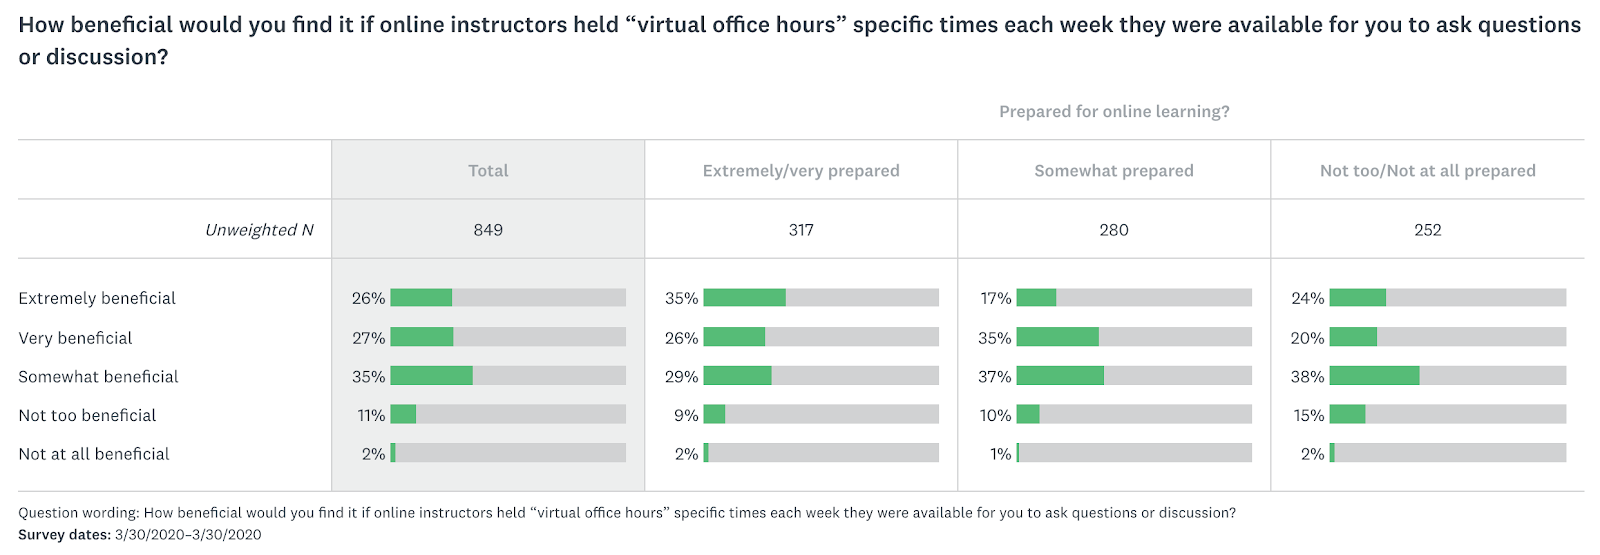 Survey response to question about usefulness of virtual office hours